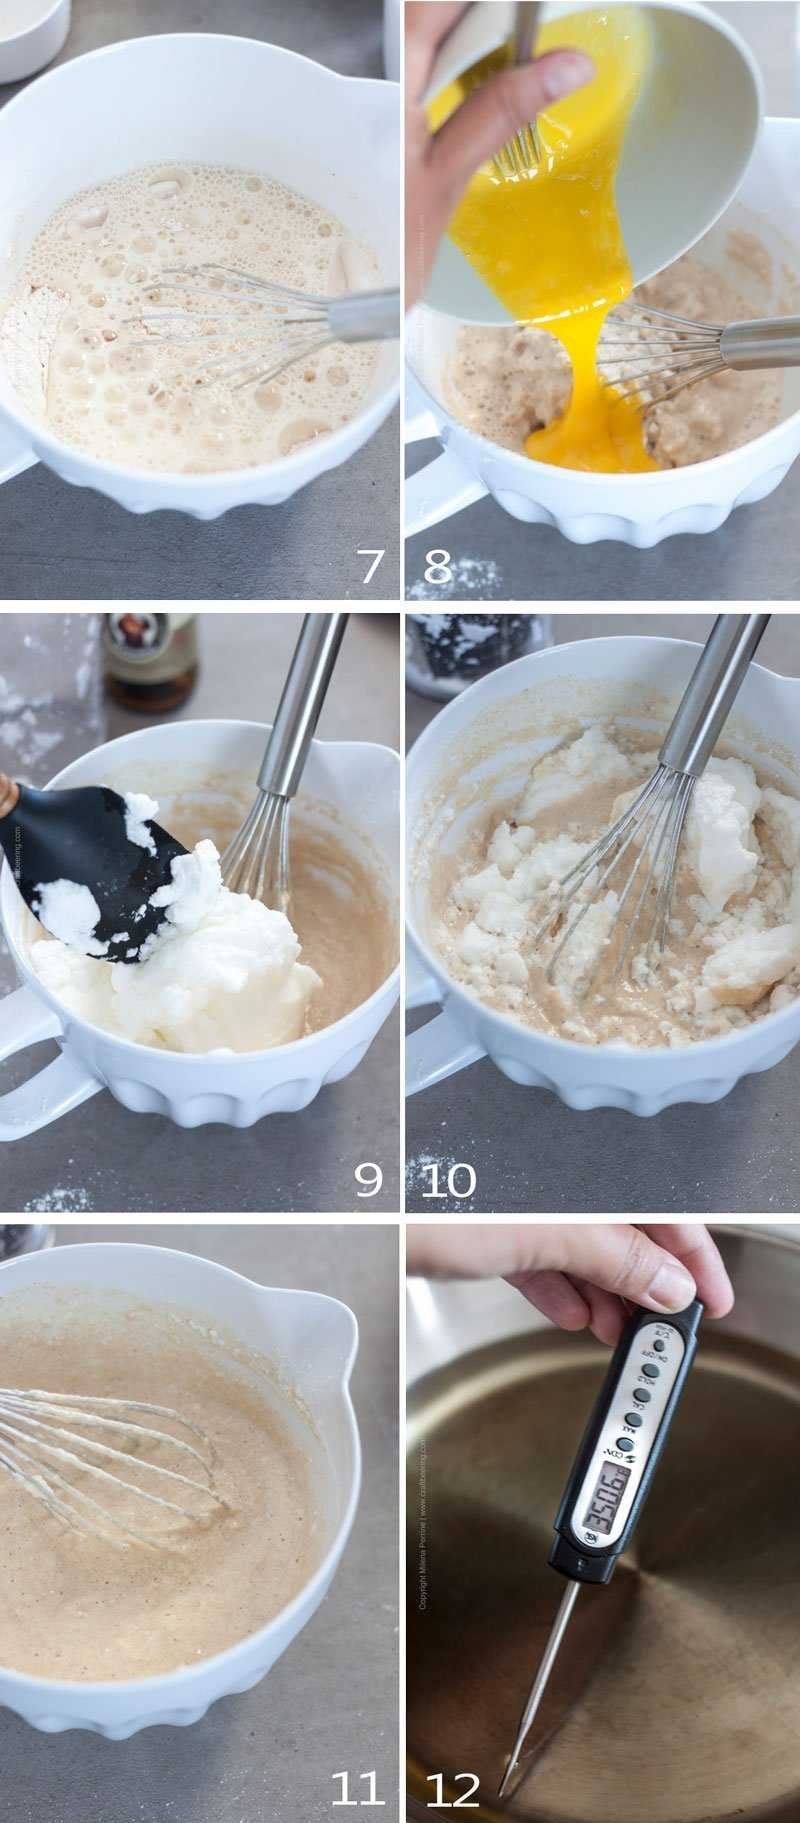 How to make an airy, light batter for apple rings - part 2 image grid